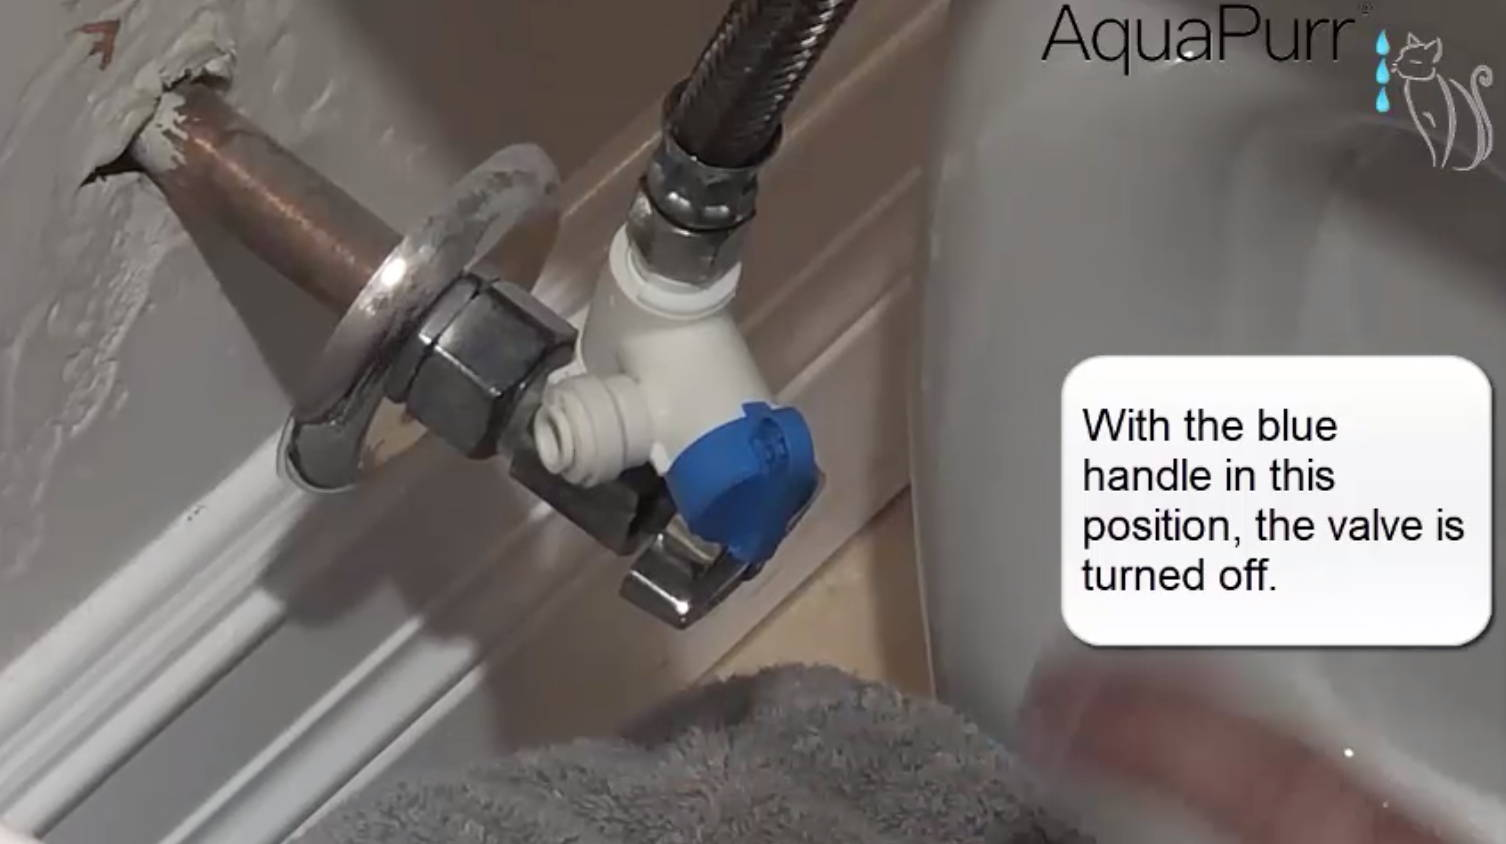 Install a tee valve on the toilet water supply for an AquaPurr on a bathtub